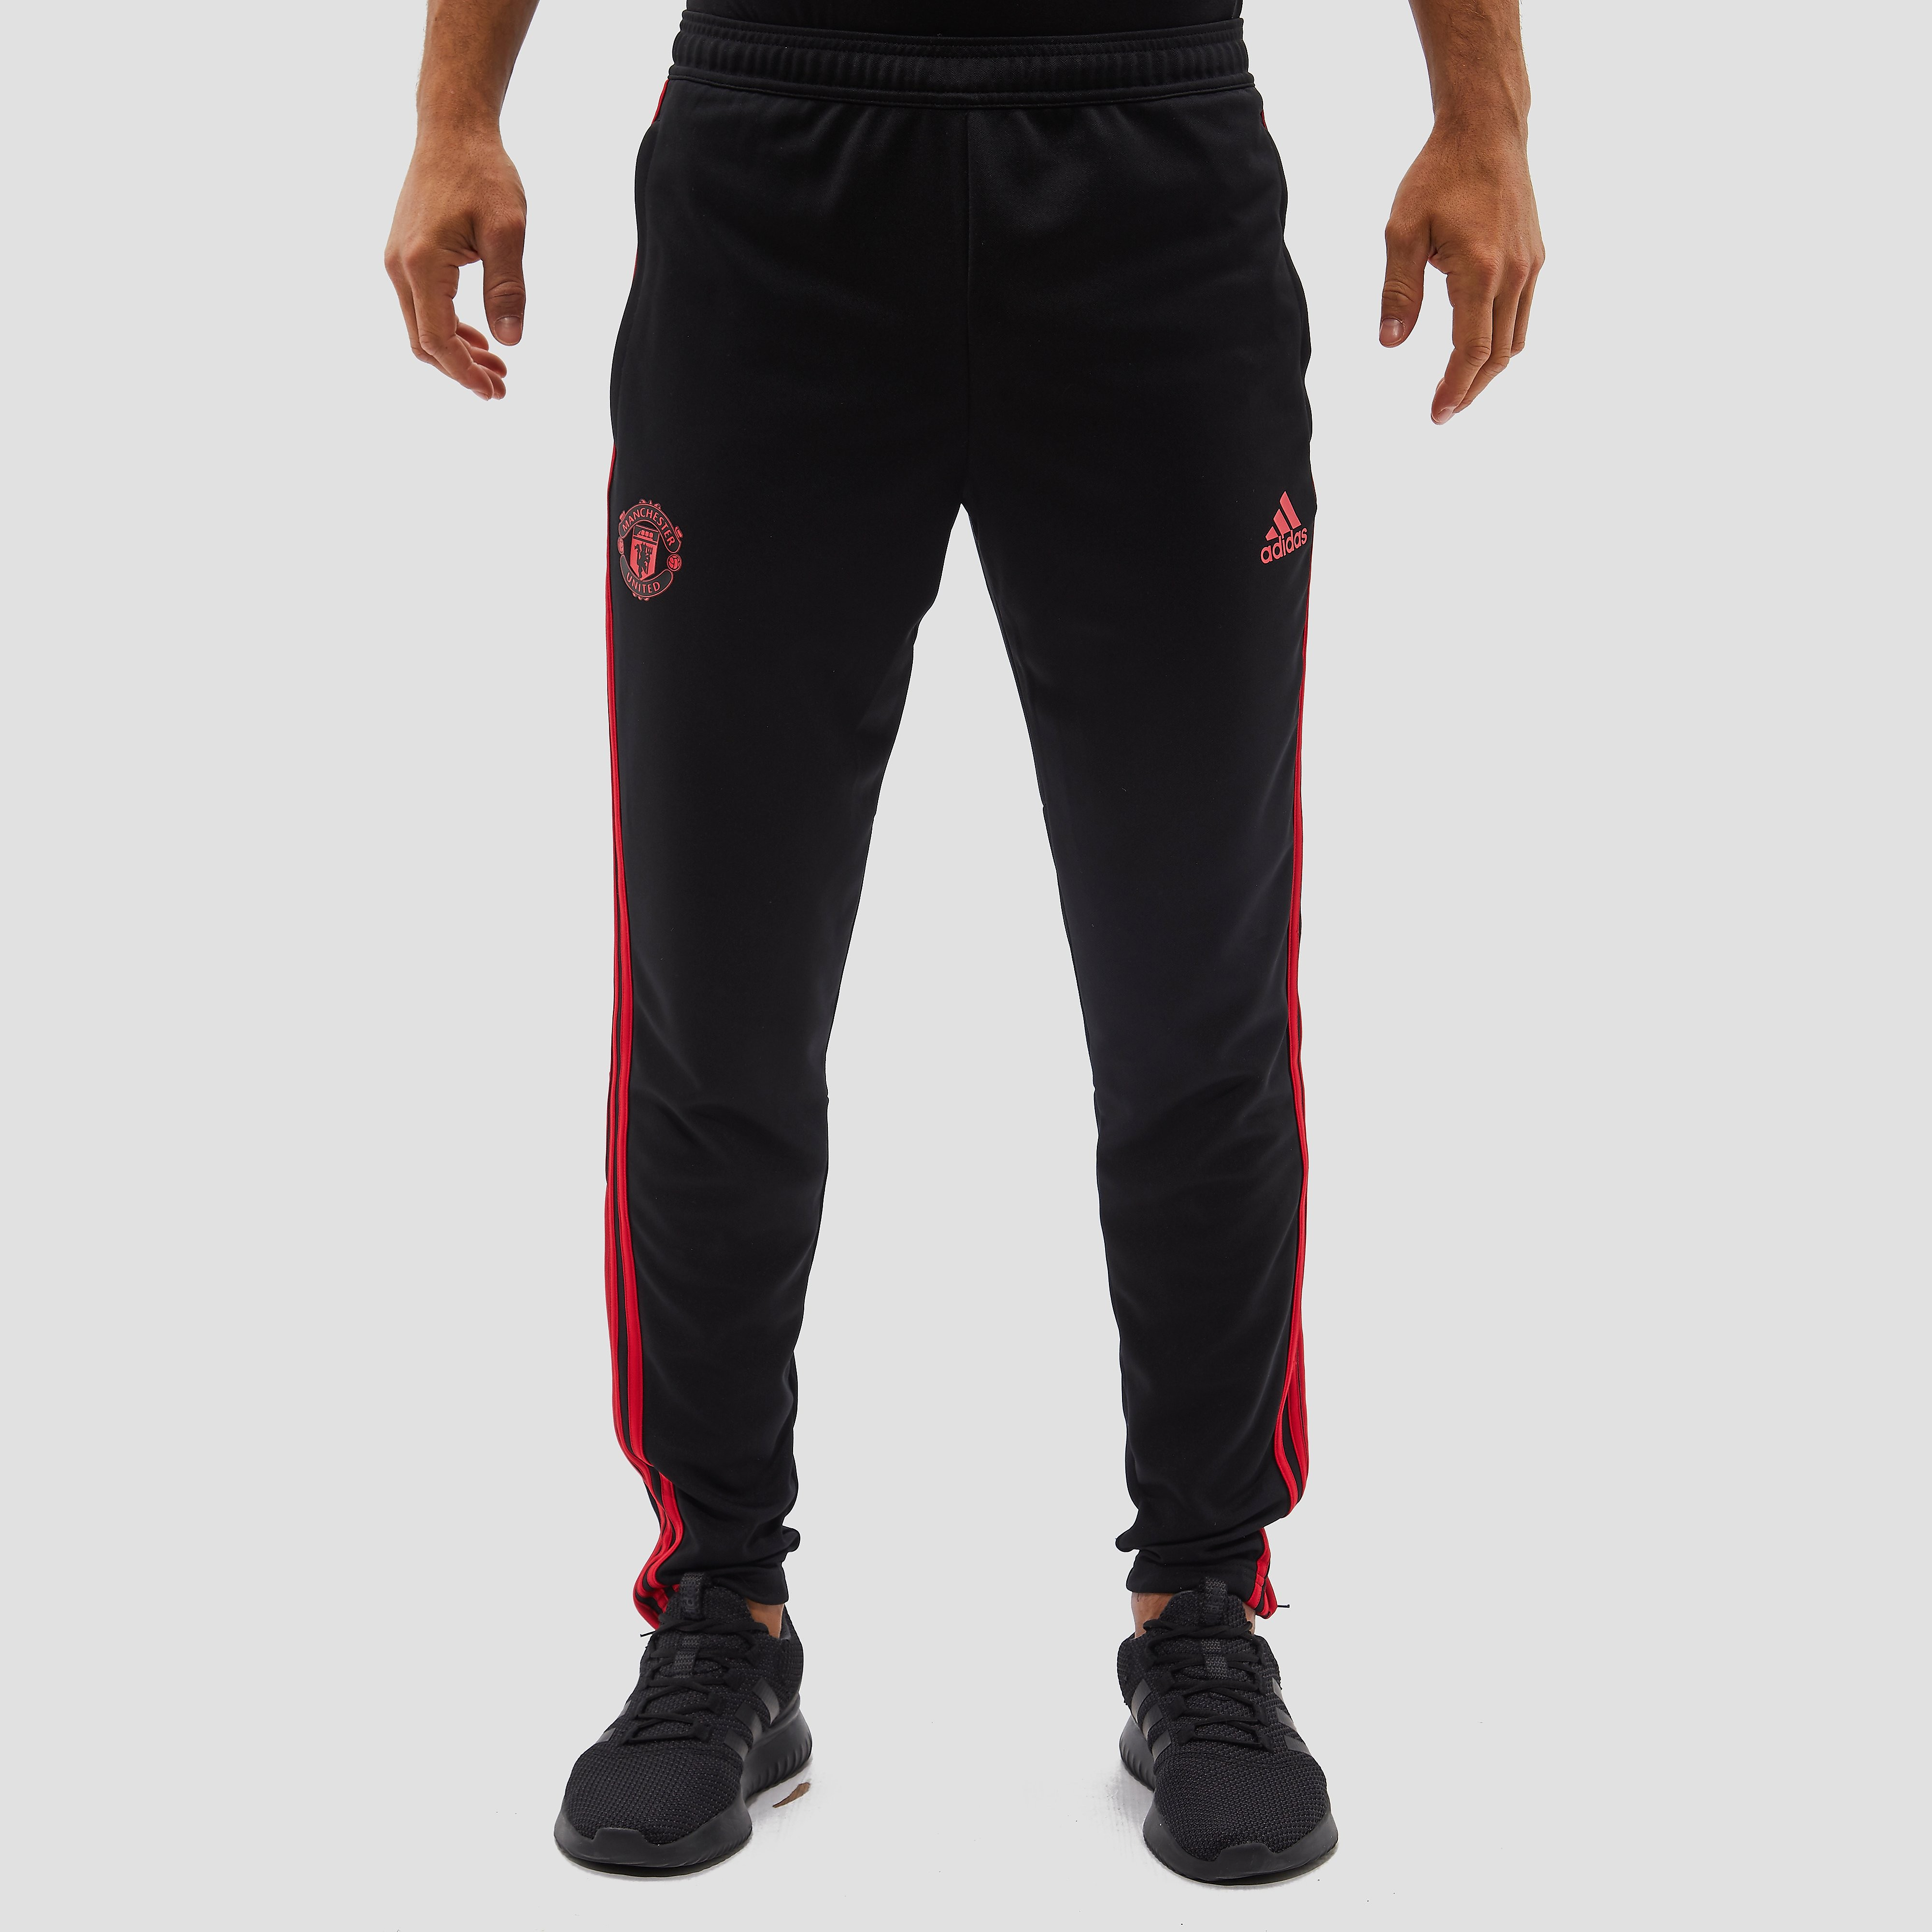 Manchester United Fc Trainingsbroek 18-19 Zwart-Rood Heren Black-Red